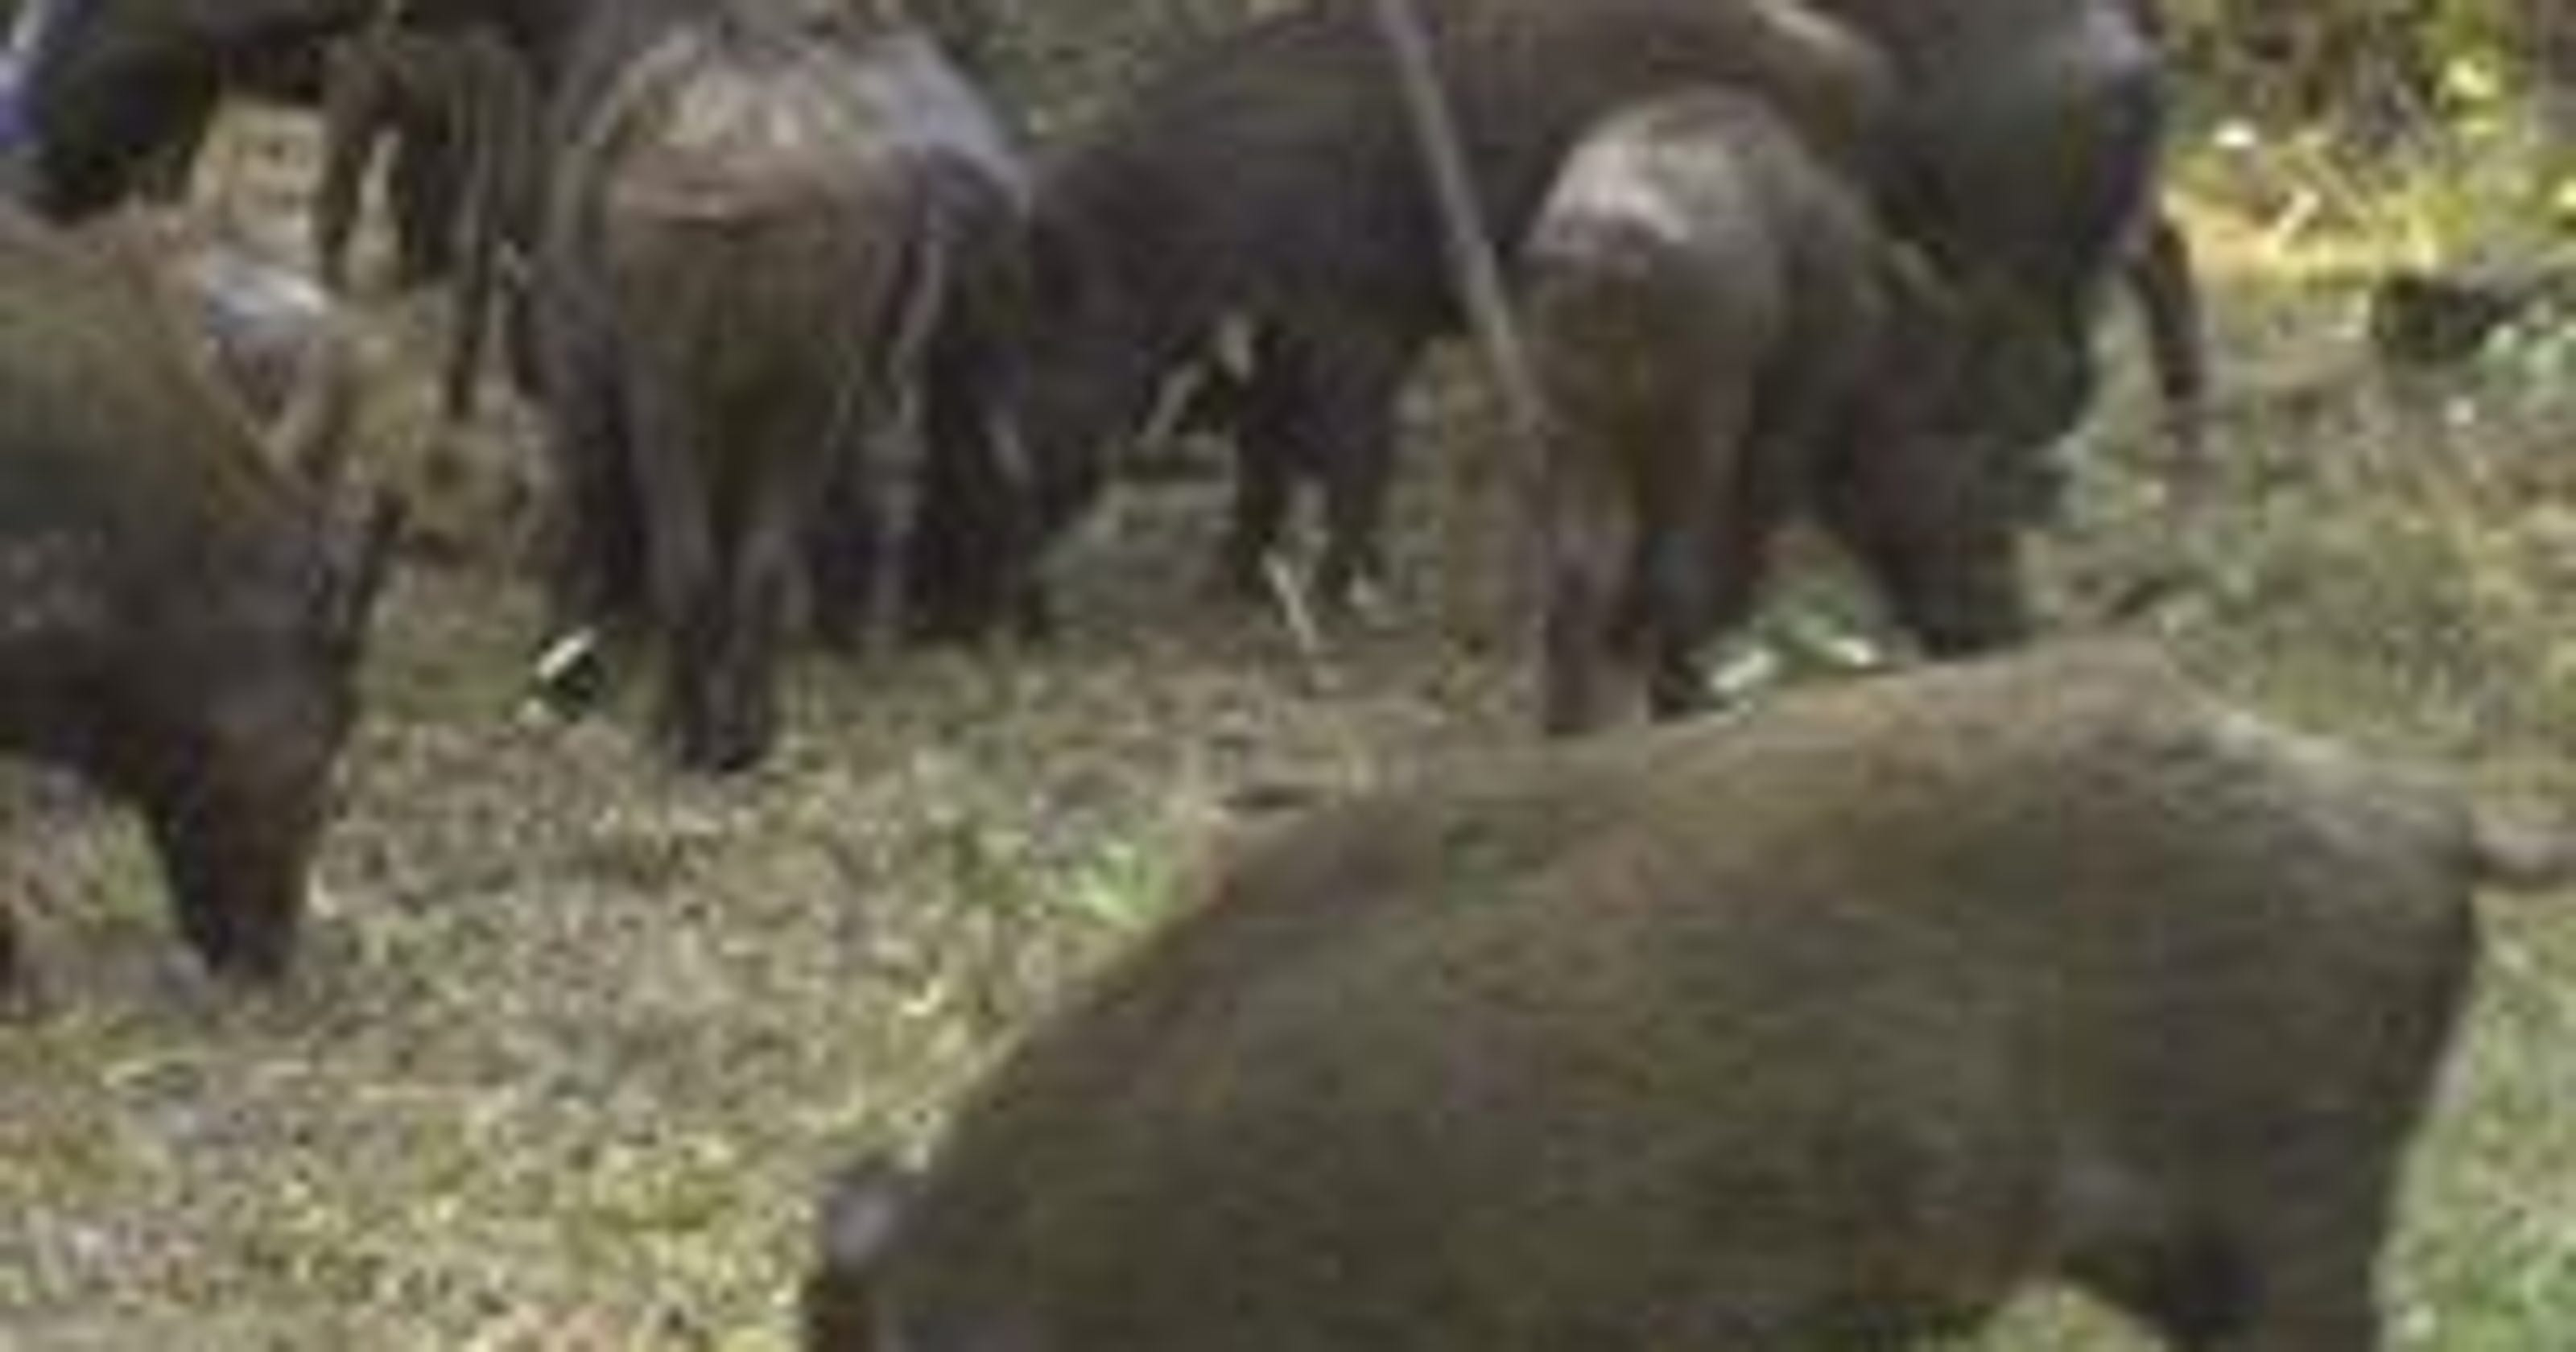 Hogs wild: Feral pigs pose problems for La  farmers